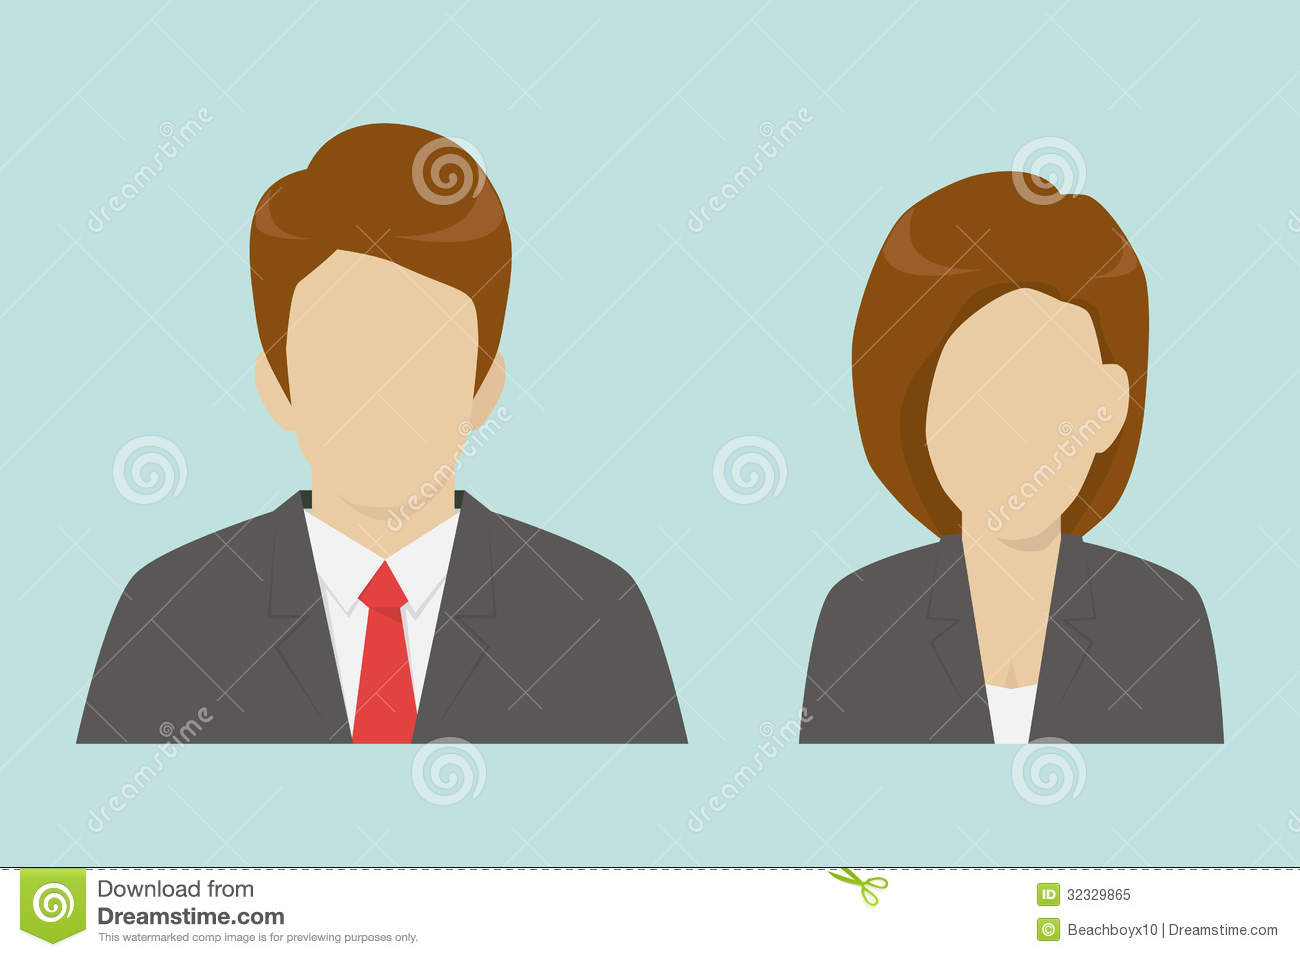 Male And Female Business Icons Royalty Free Stock Photo   Image